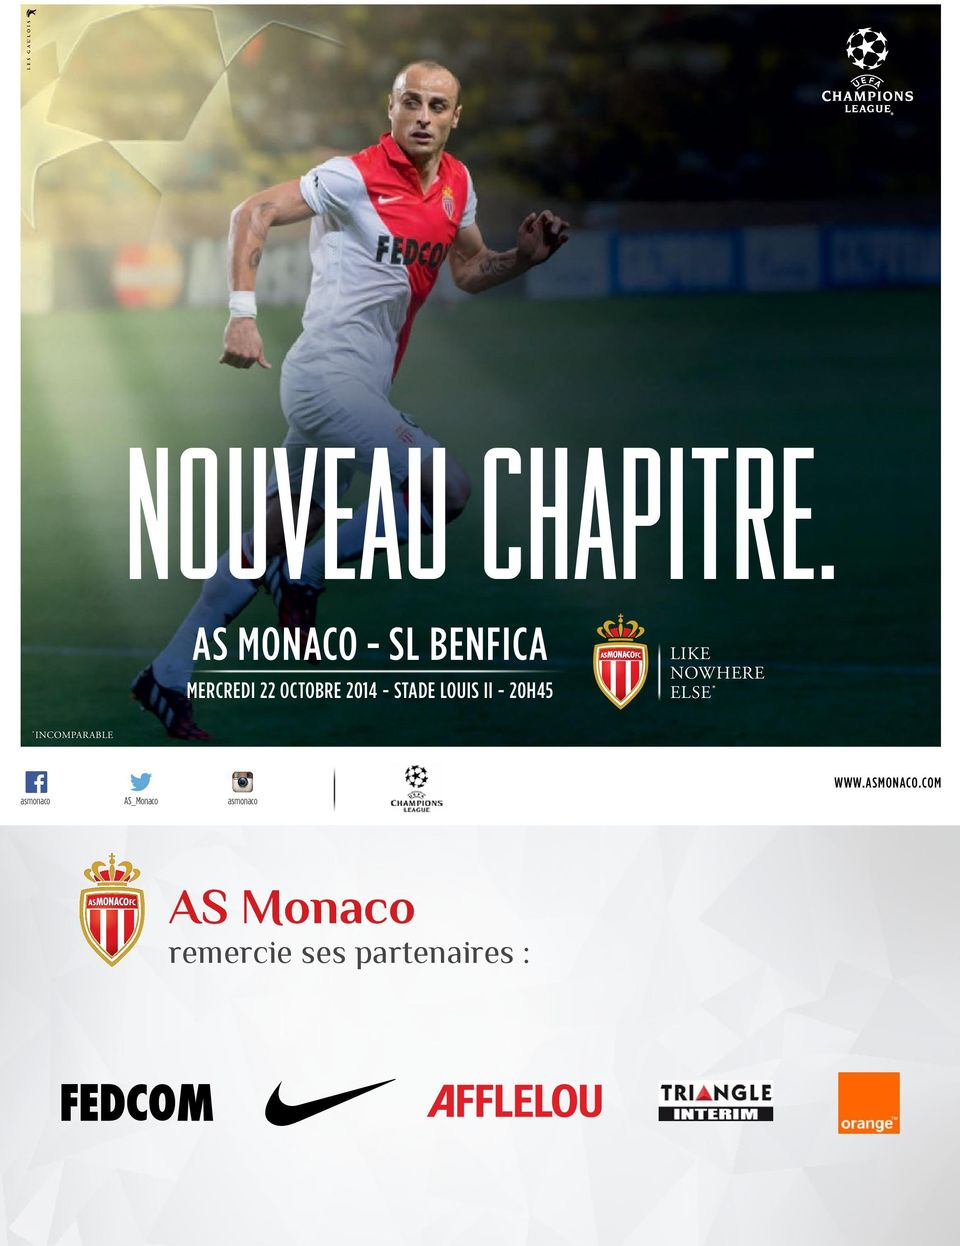 20H45 LIKE NOWHERE ELSE * * INCOMPARABLE asmonaco AS_Monaco